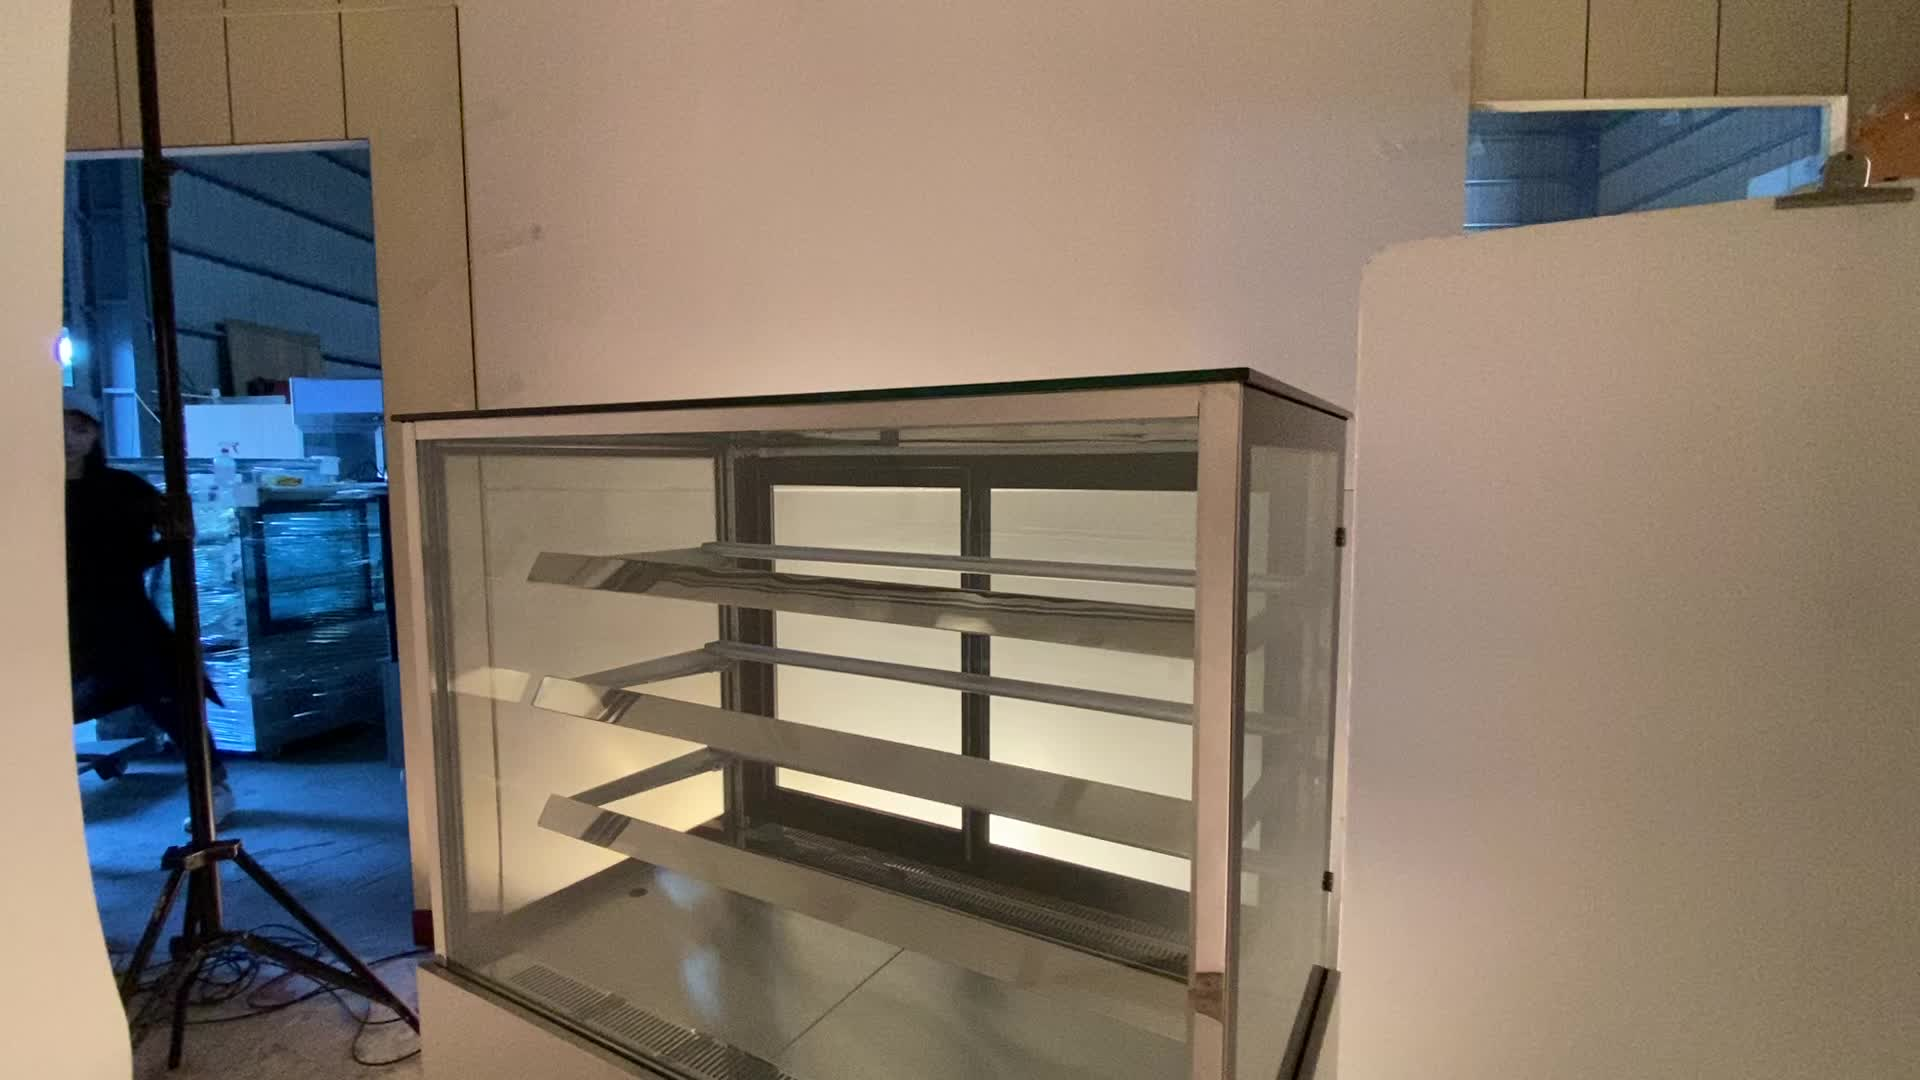 Good price cake display fridge for south america cake display fridge case deli cabinet showcase chiller refrigerator